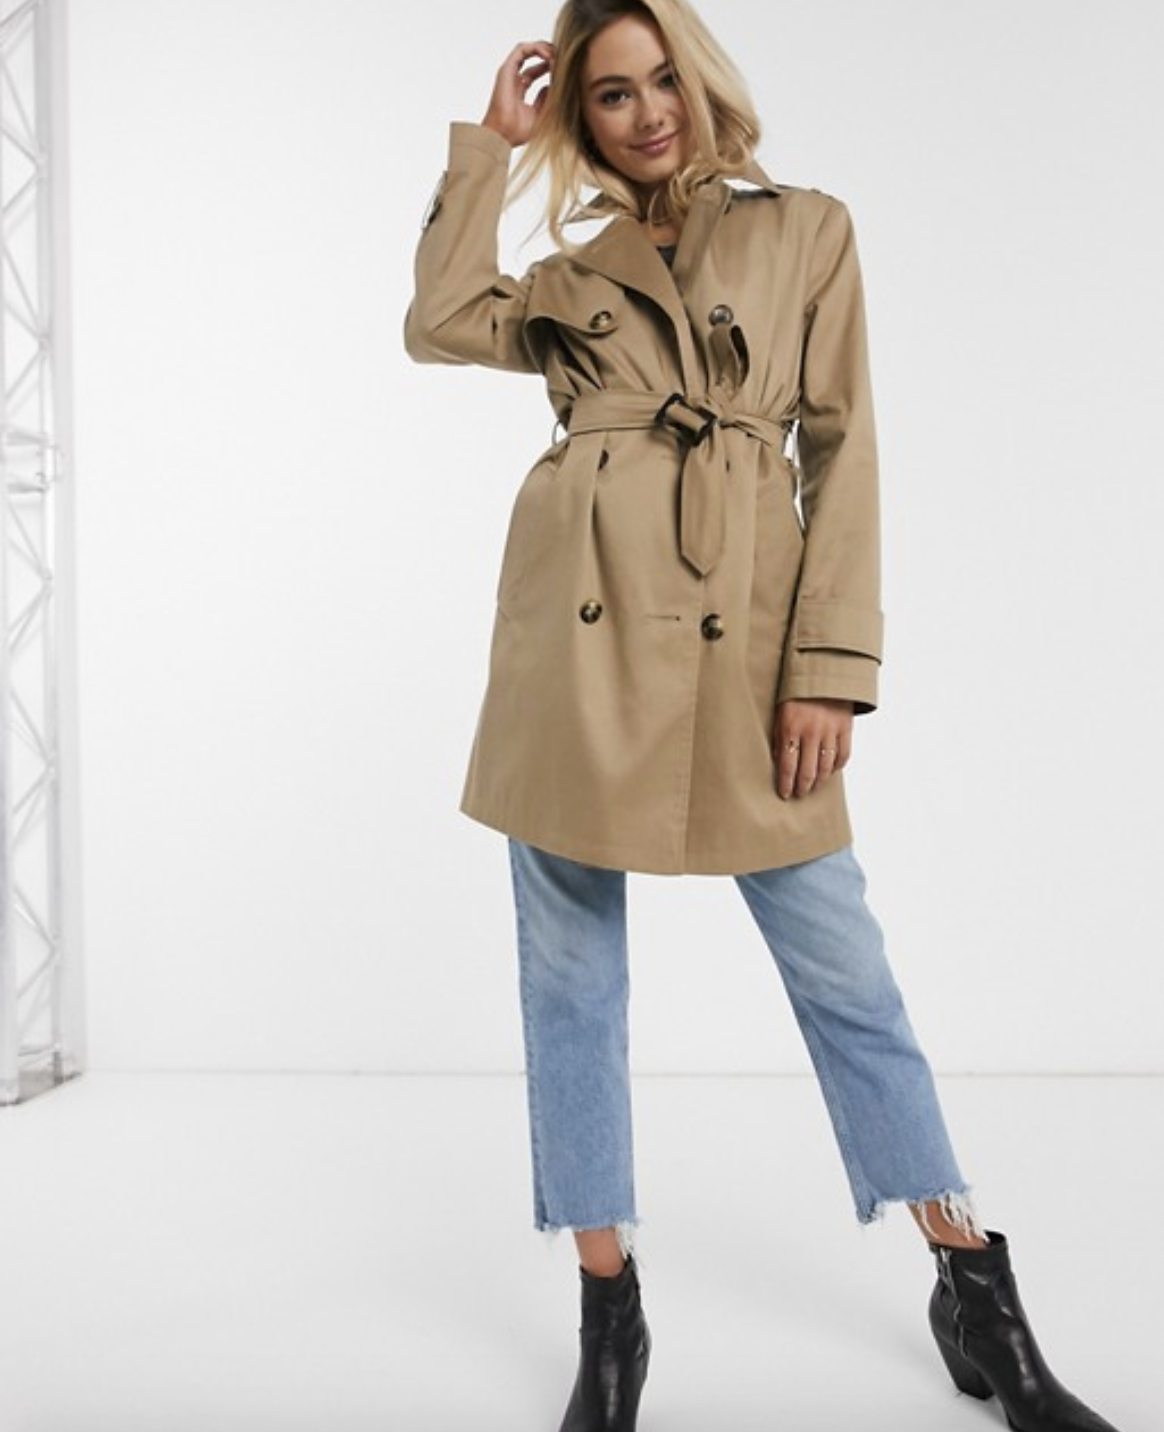 Trench coat in a stone color with a belt